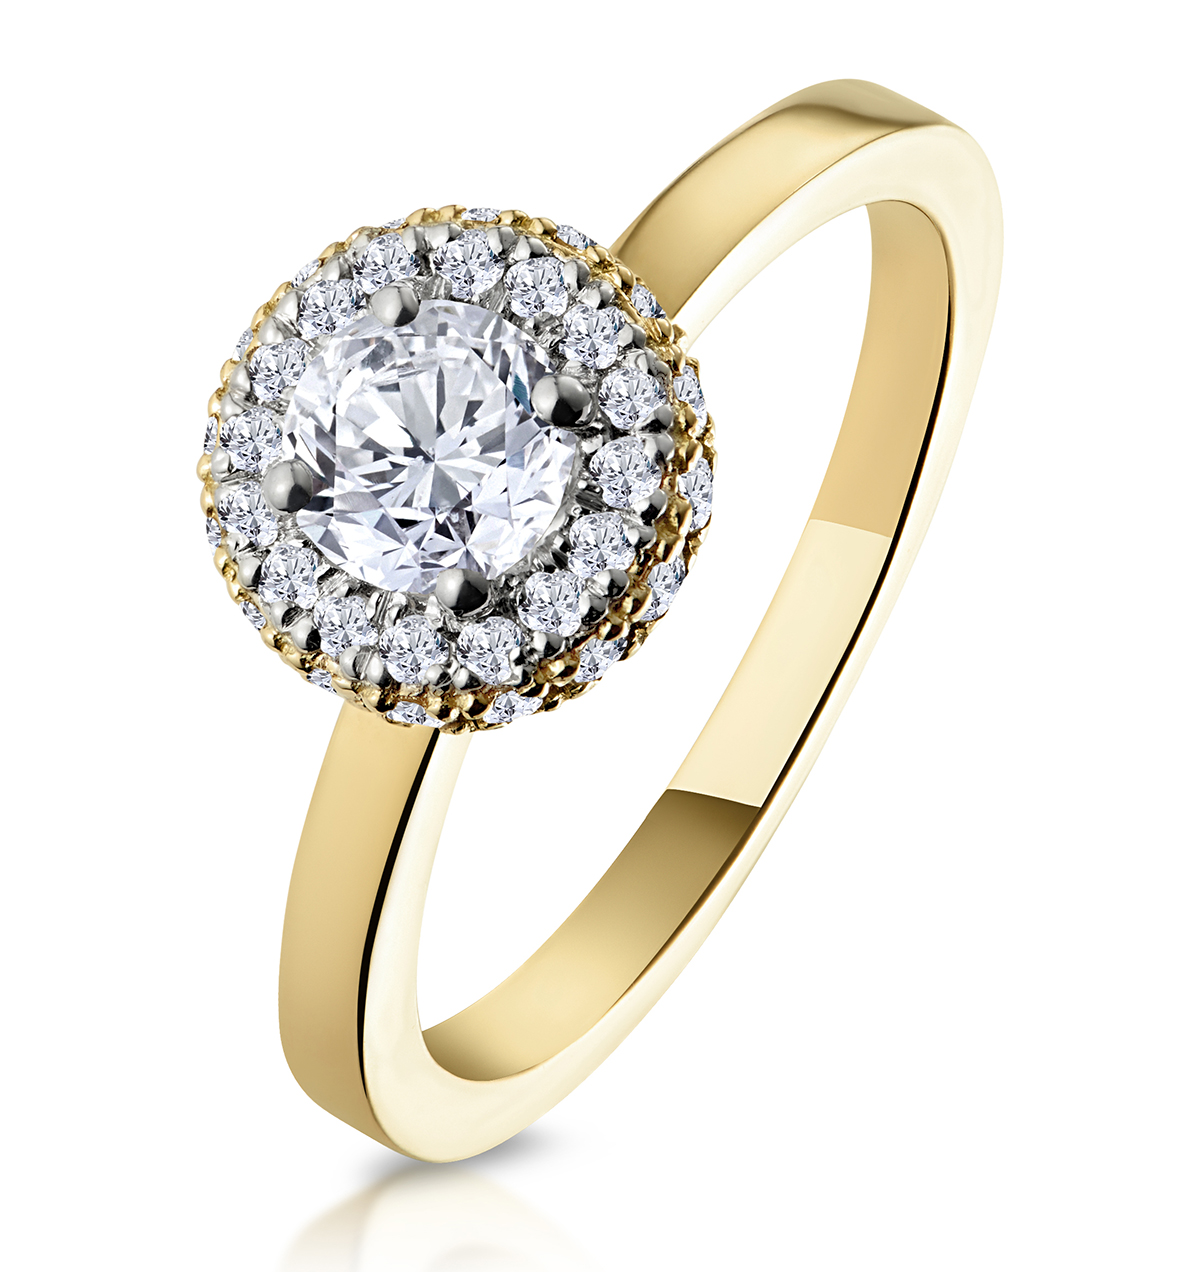 Eleanor GIA Diamond Halo Engagement Ring in 18K Gold 0.65ct G/SI1 - image 1